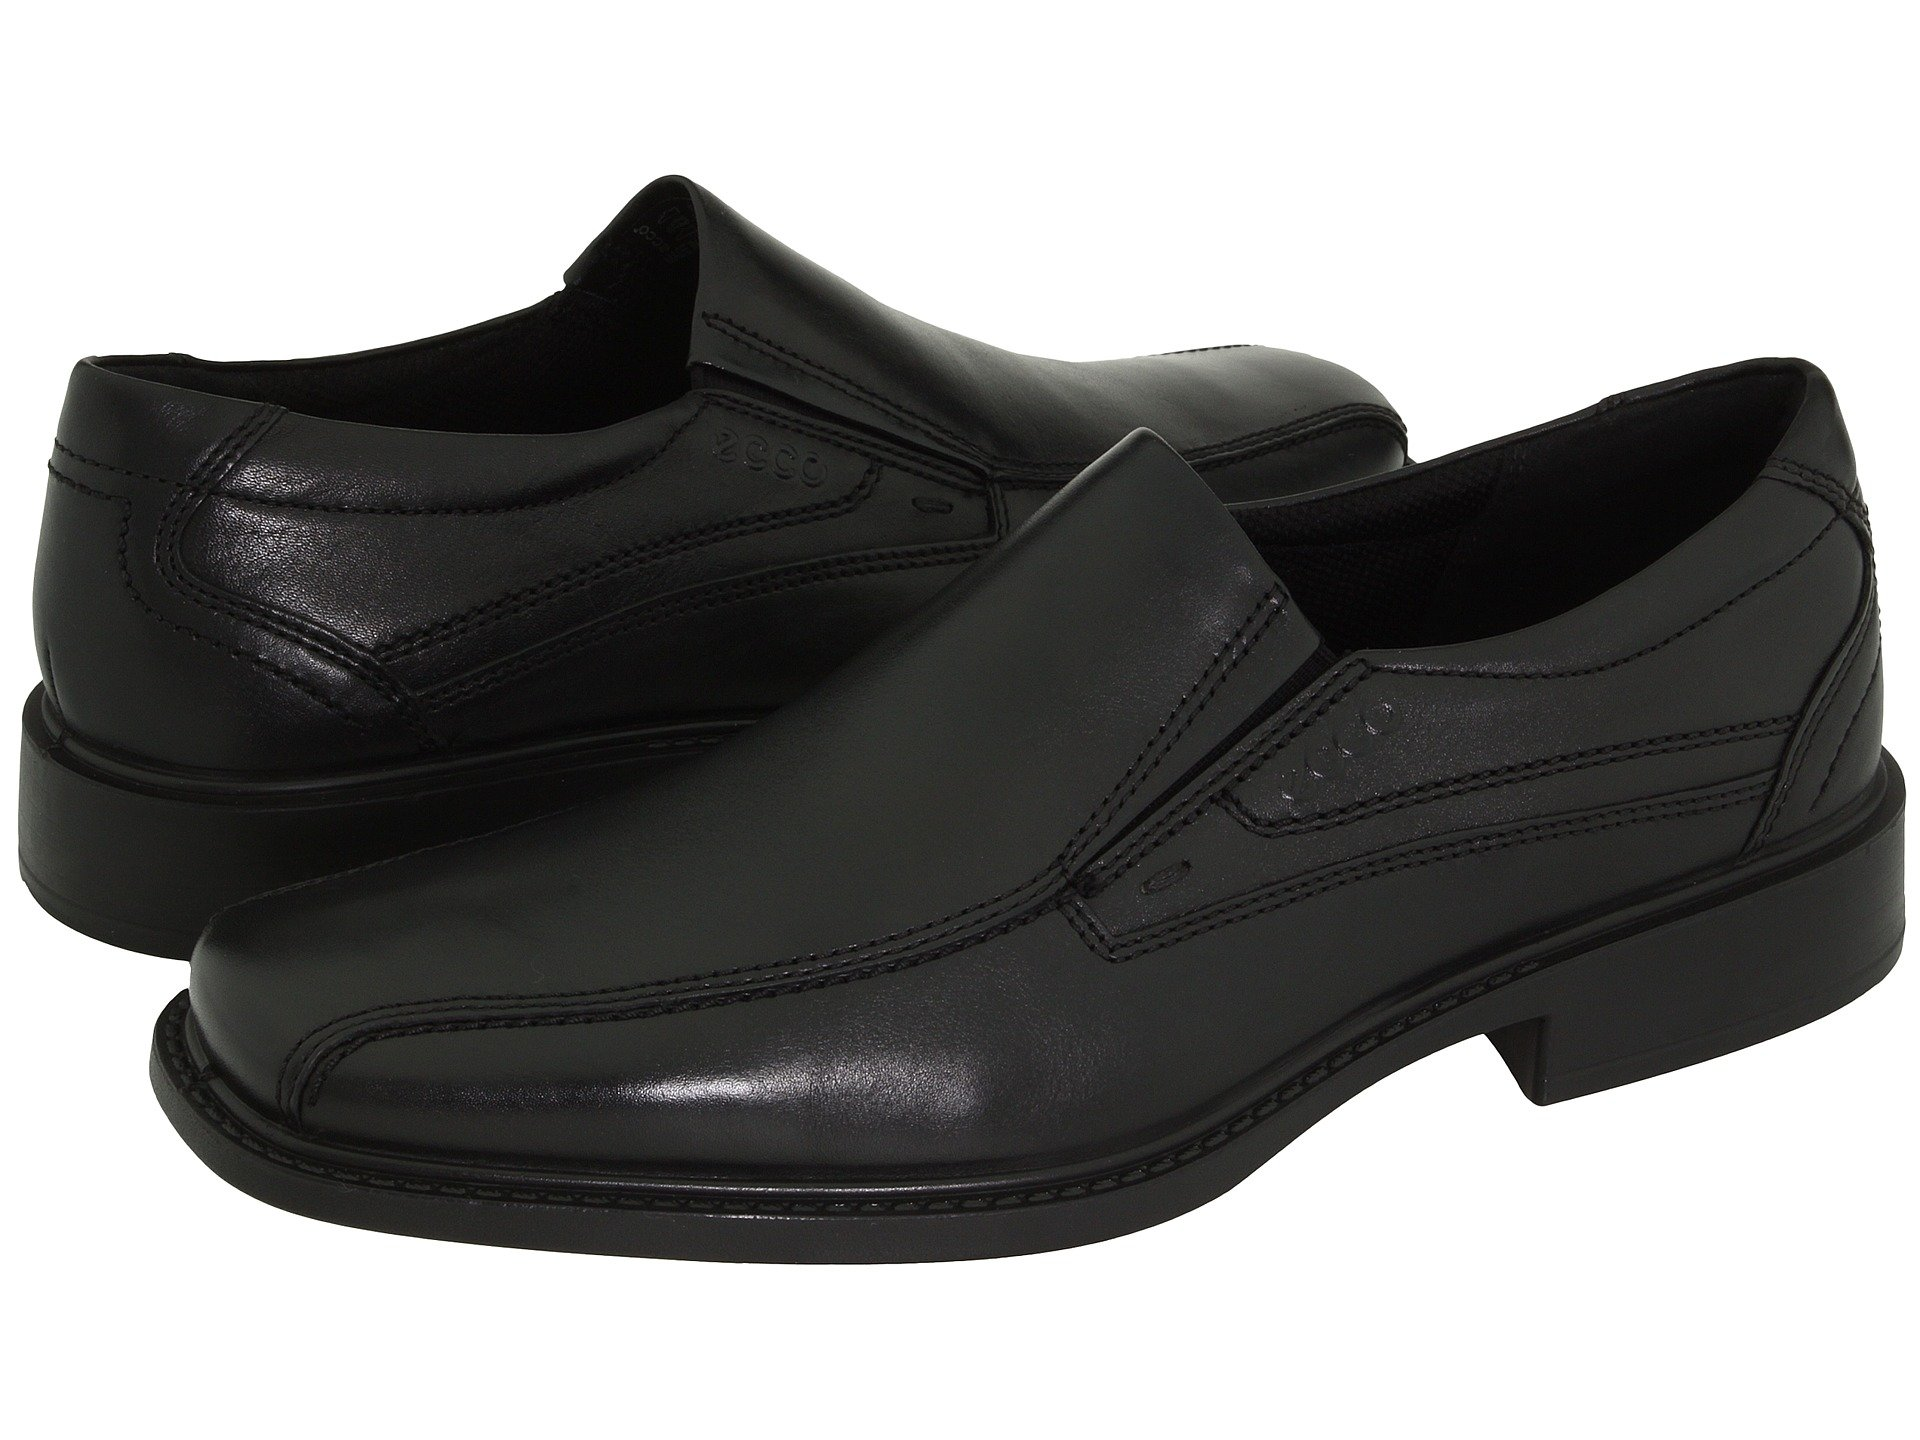 ECCO Men's New Jersey Slip On,Black,39 EU (US Men's 5-5.5 M) by ECCO (Image #6)